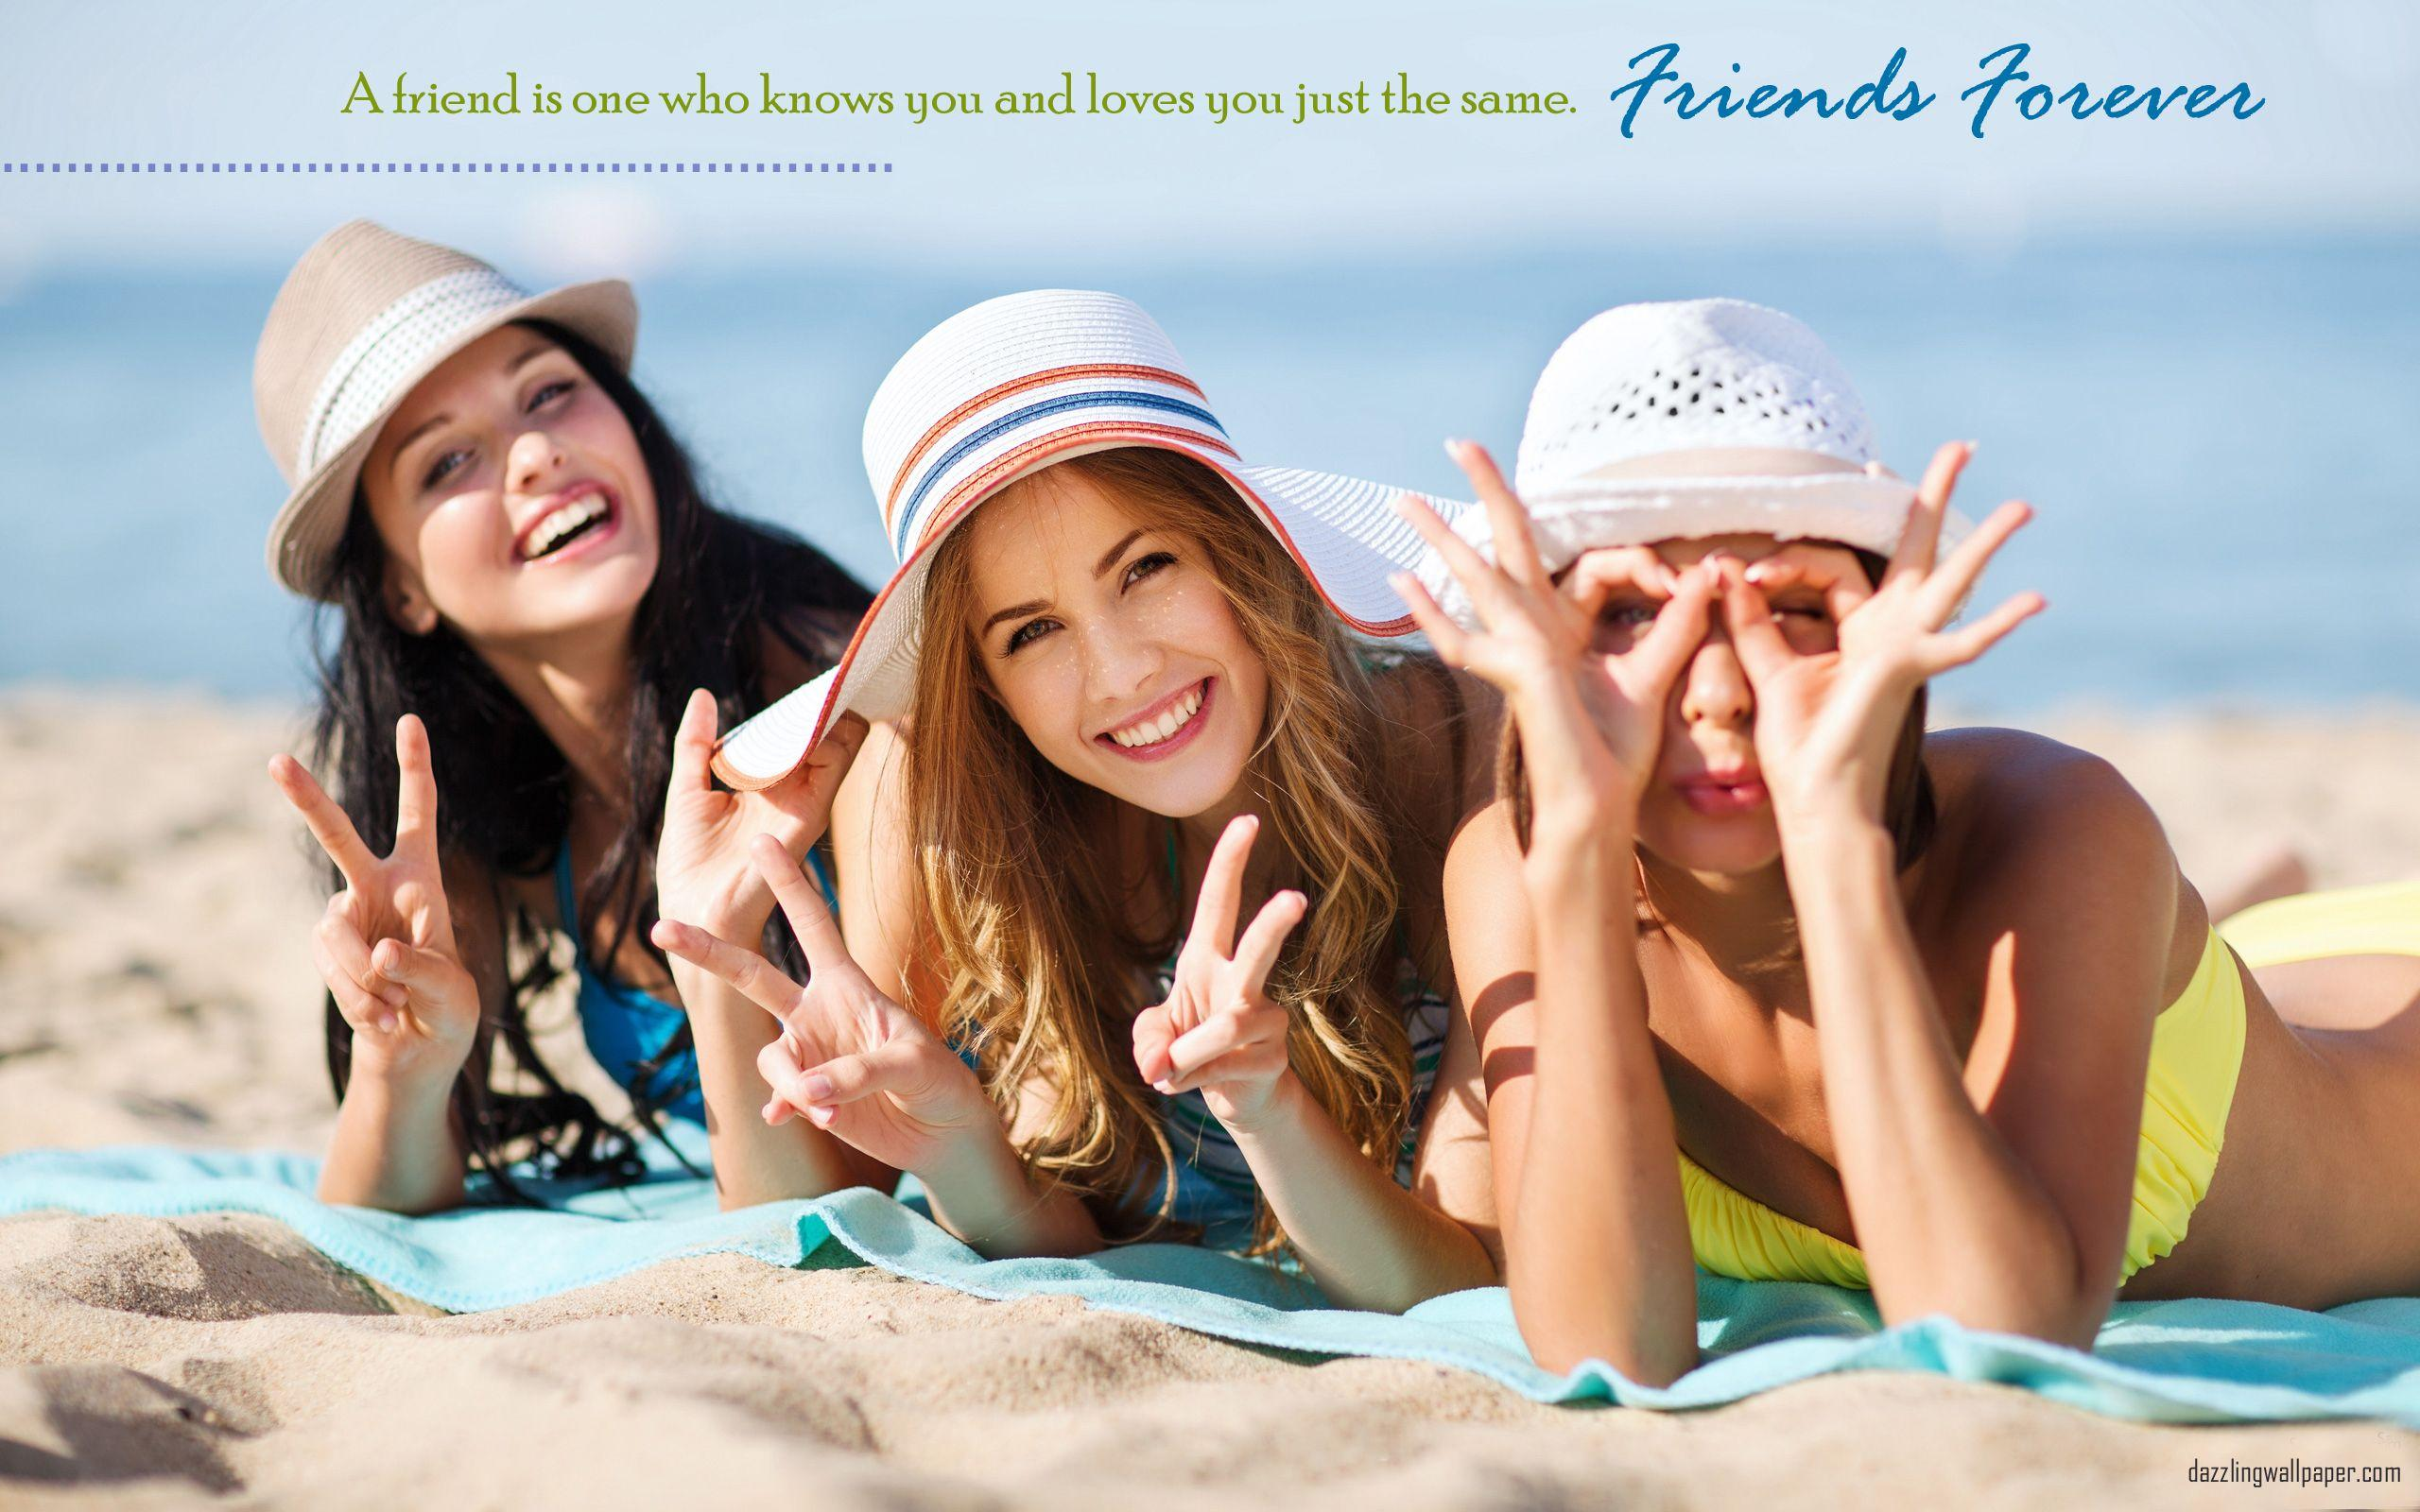 Friends Forever Image Hd For Girls